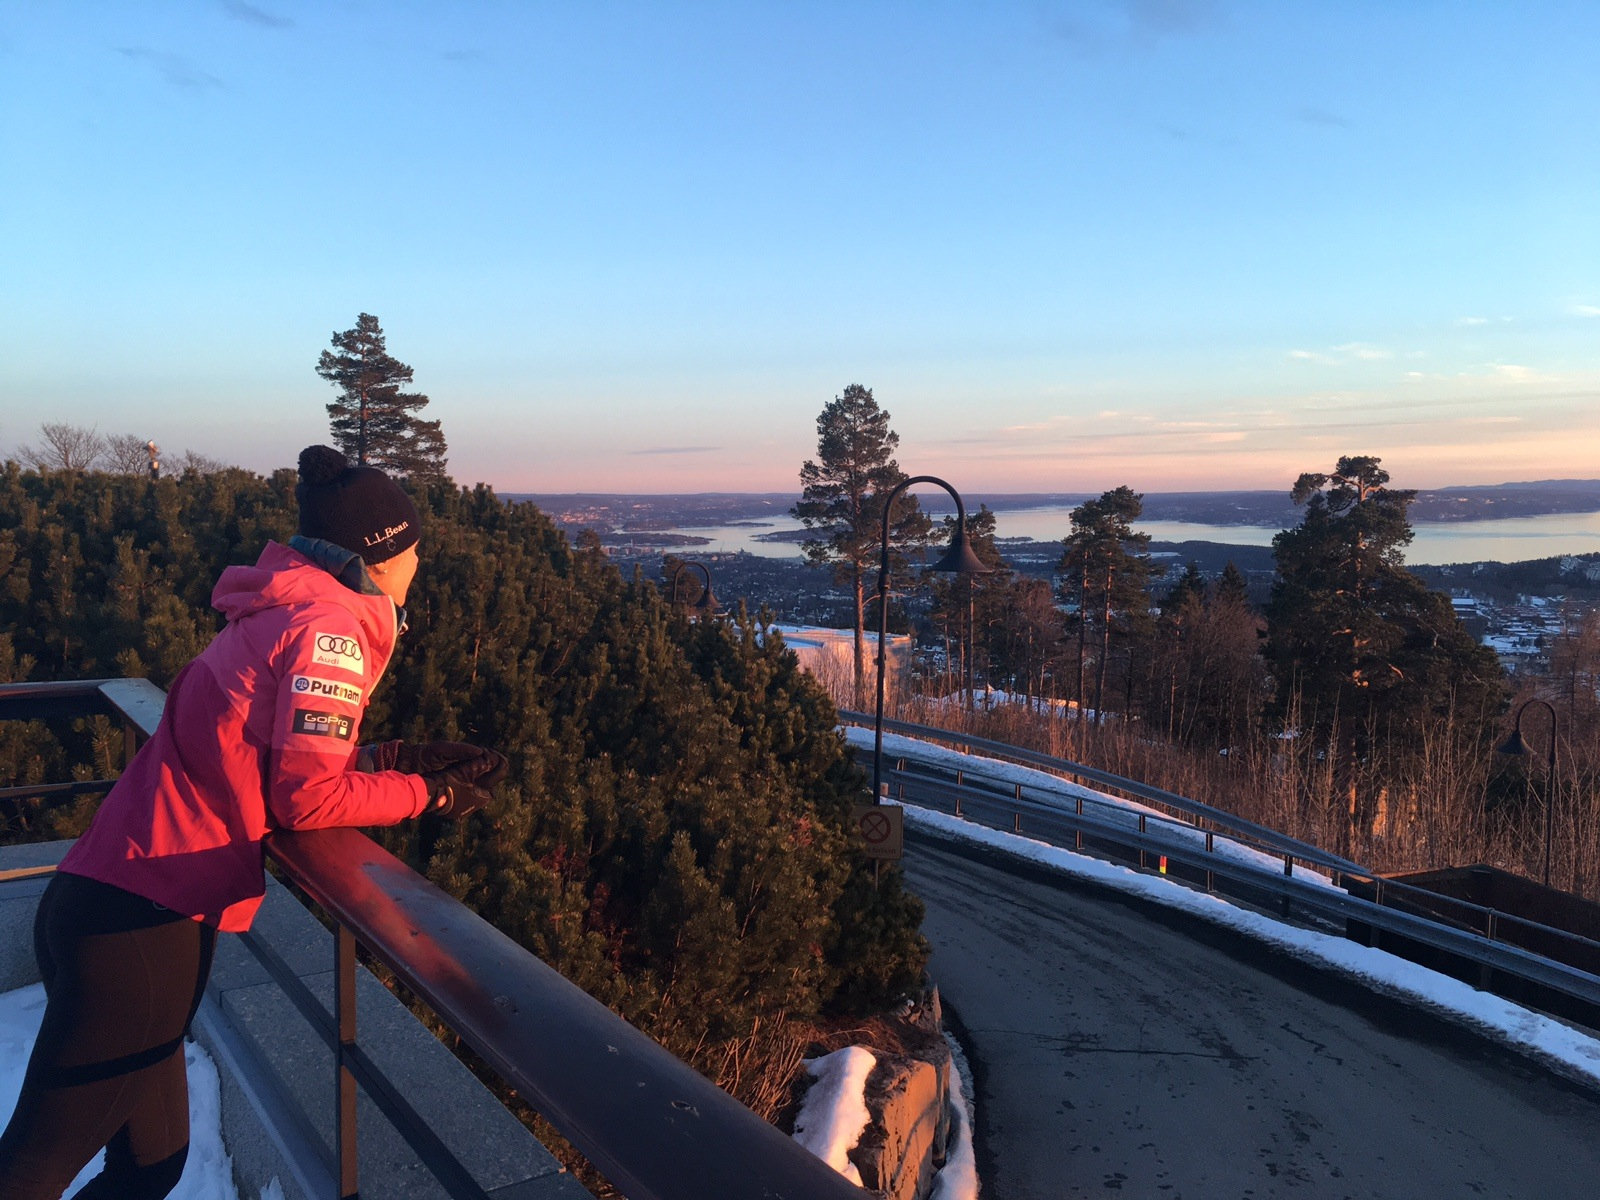 I always enjoy racing in Oslo! Holmenkollen is my favorite place in the world to race! That view almost feels like home.